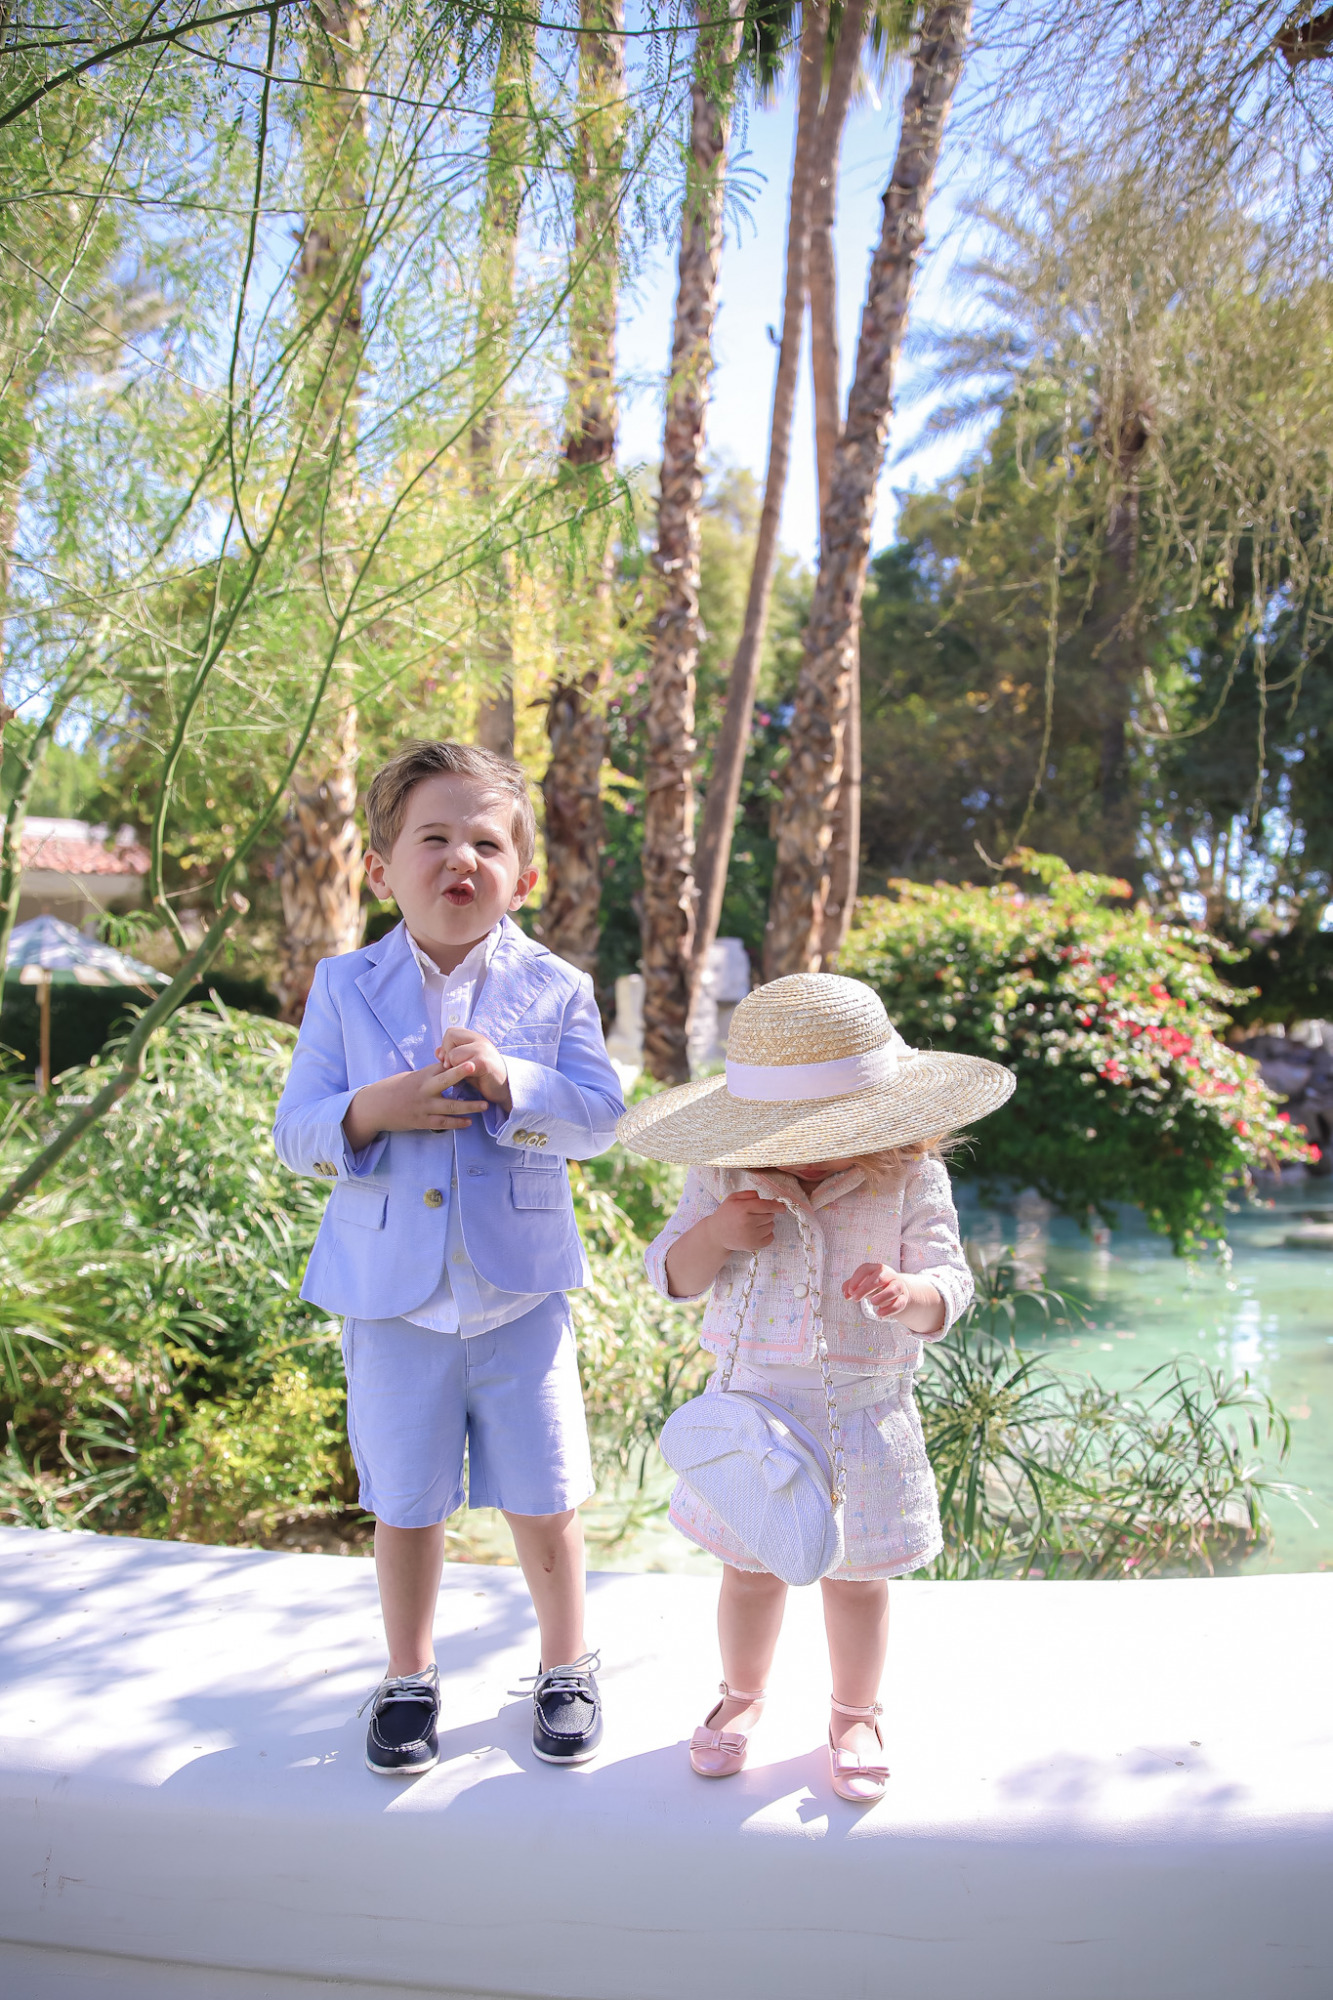 Spring Outfit Ideas for Kids by popular US fashion blog, The Sweetest Thing: image of a young boy and girl standing outside next to a landscaped pond and wearing aPink Boucle Jacket, Pink Boucle Shorts, Pink Bow Flats, White Purse, Straw Sun Hat, Seersucker Blazer, Seersucker Shorts, White Button-down, and Leather Boat Shoes.